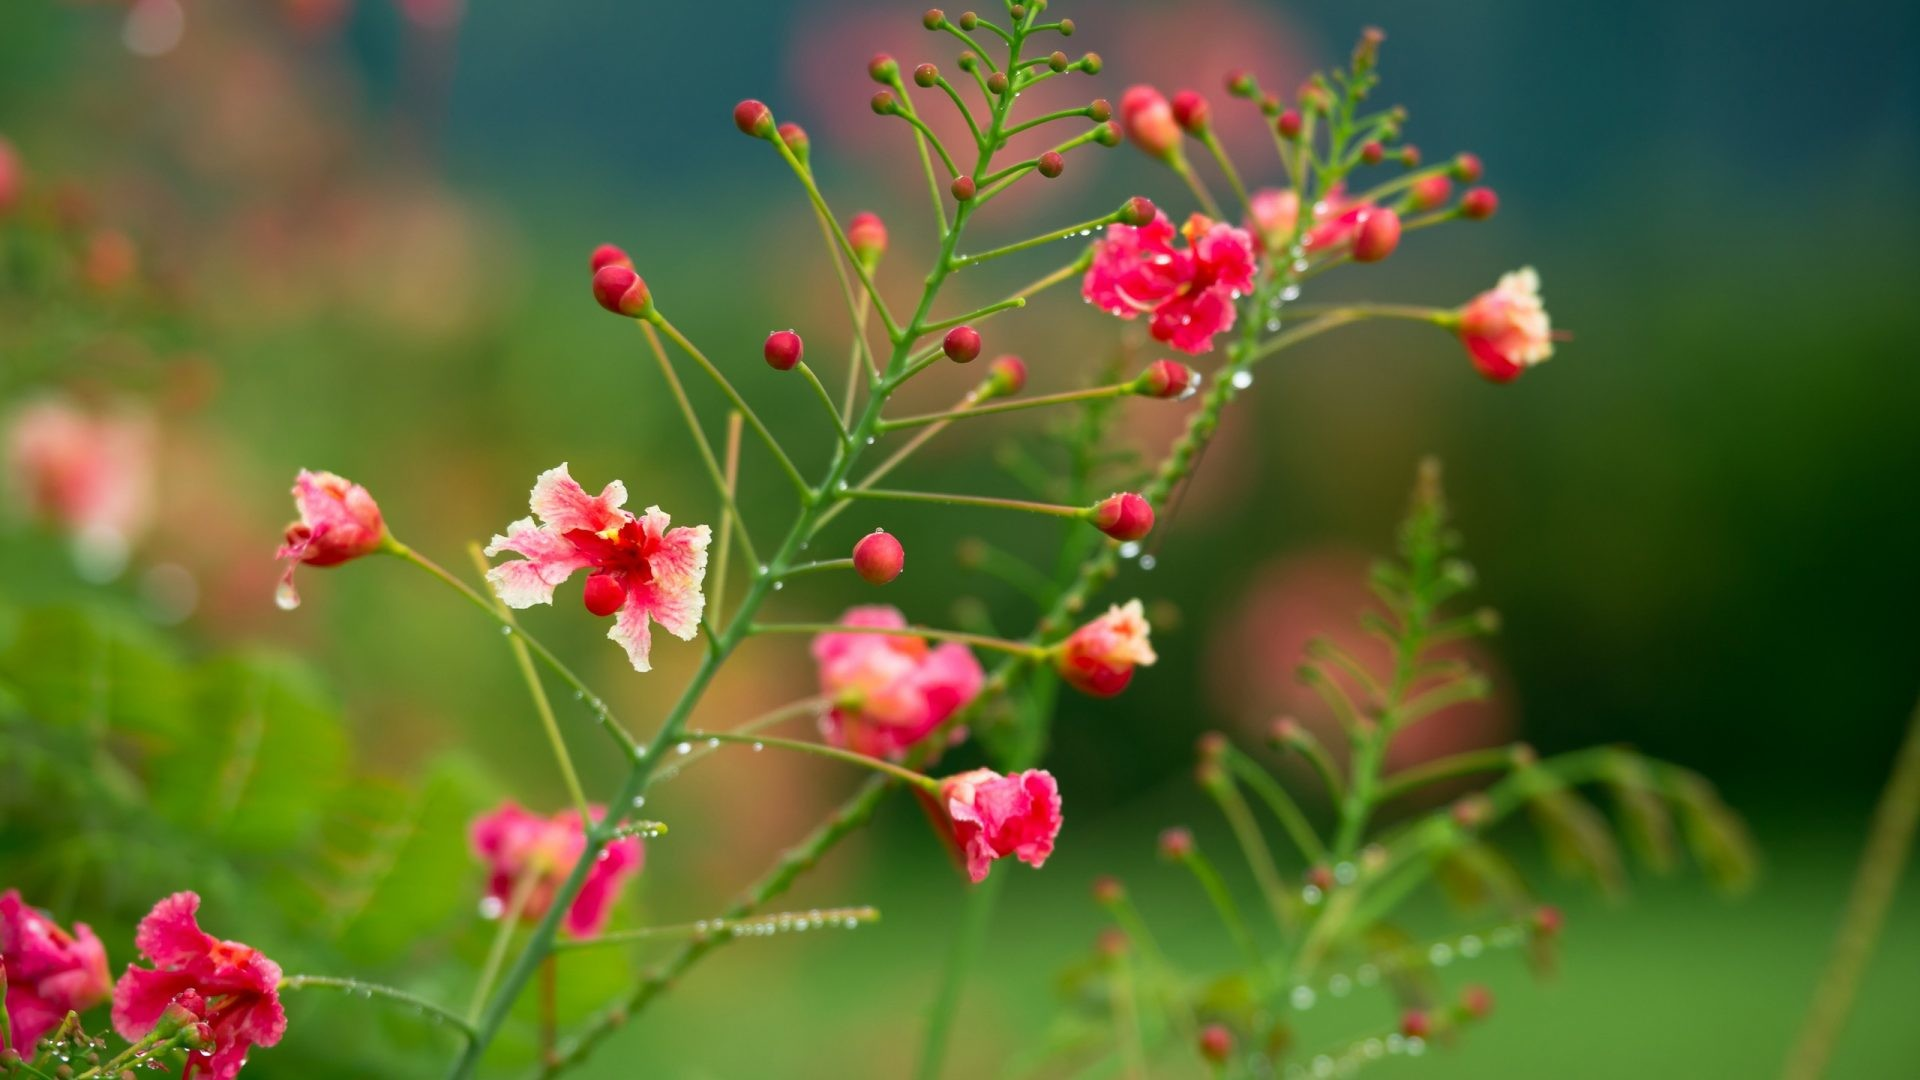 #DD6666 Color – Pretty Green Pink Beautiful Flowers Drops Colors Grass  Flower Background Hd Images